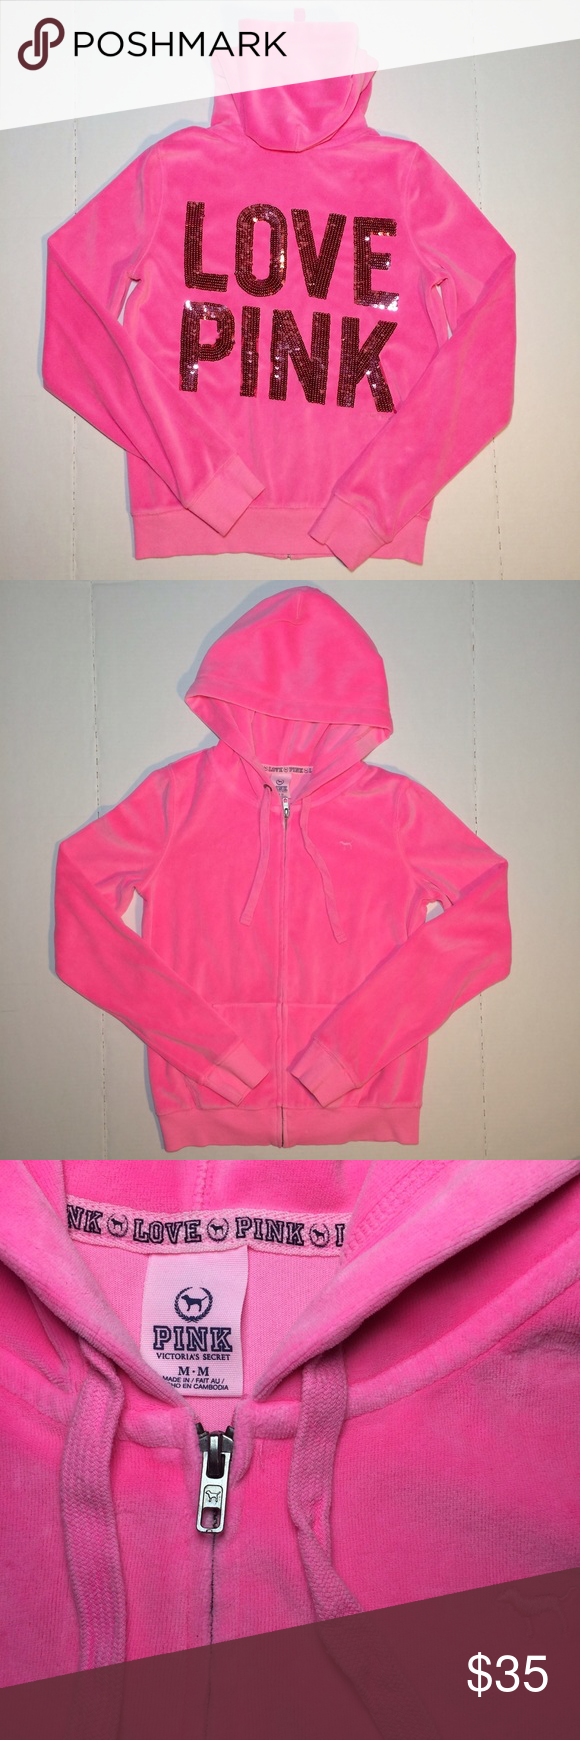 Sold Pink VS Love Pink L/S Zip Up Sweater Sz M Preowned VS Love ...